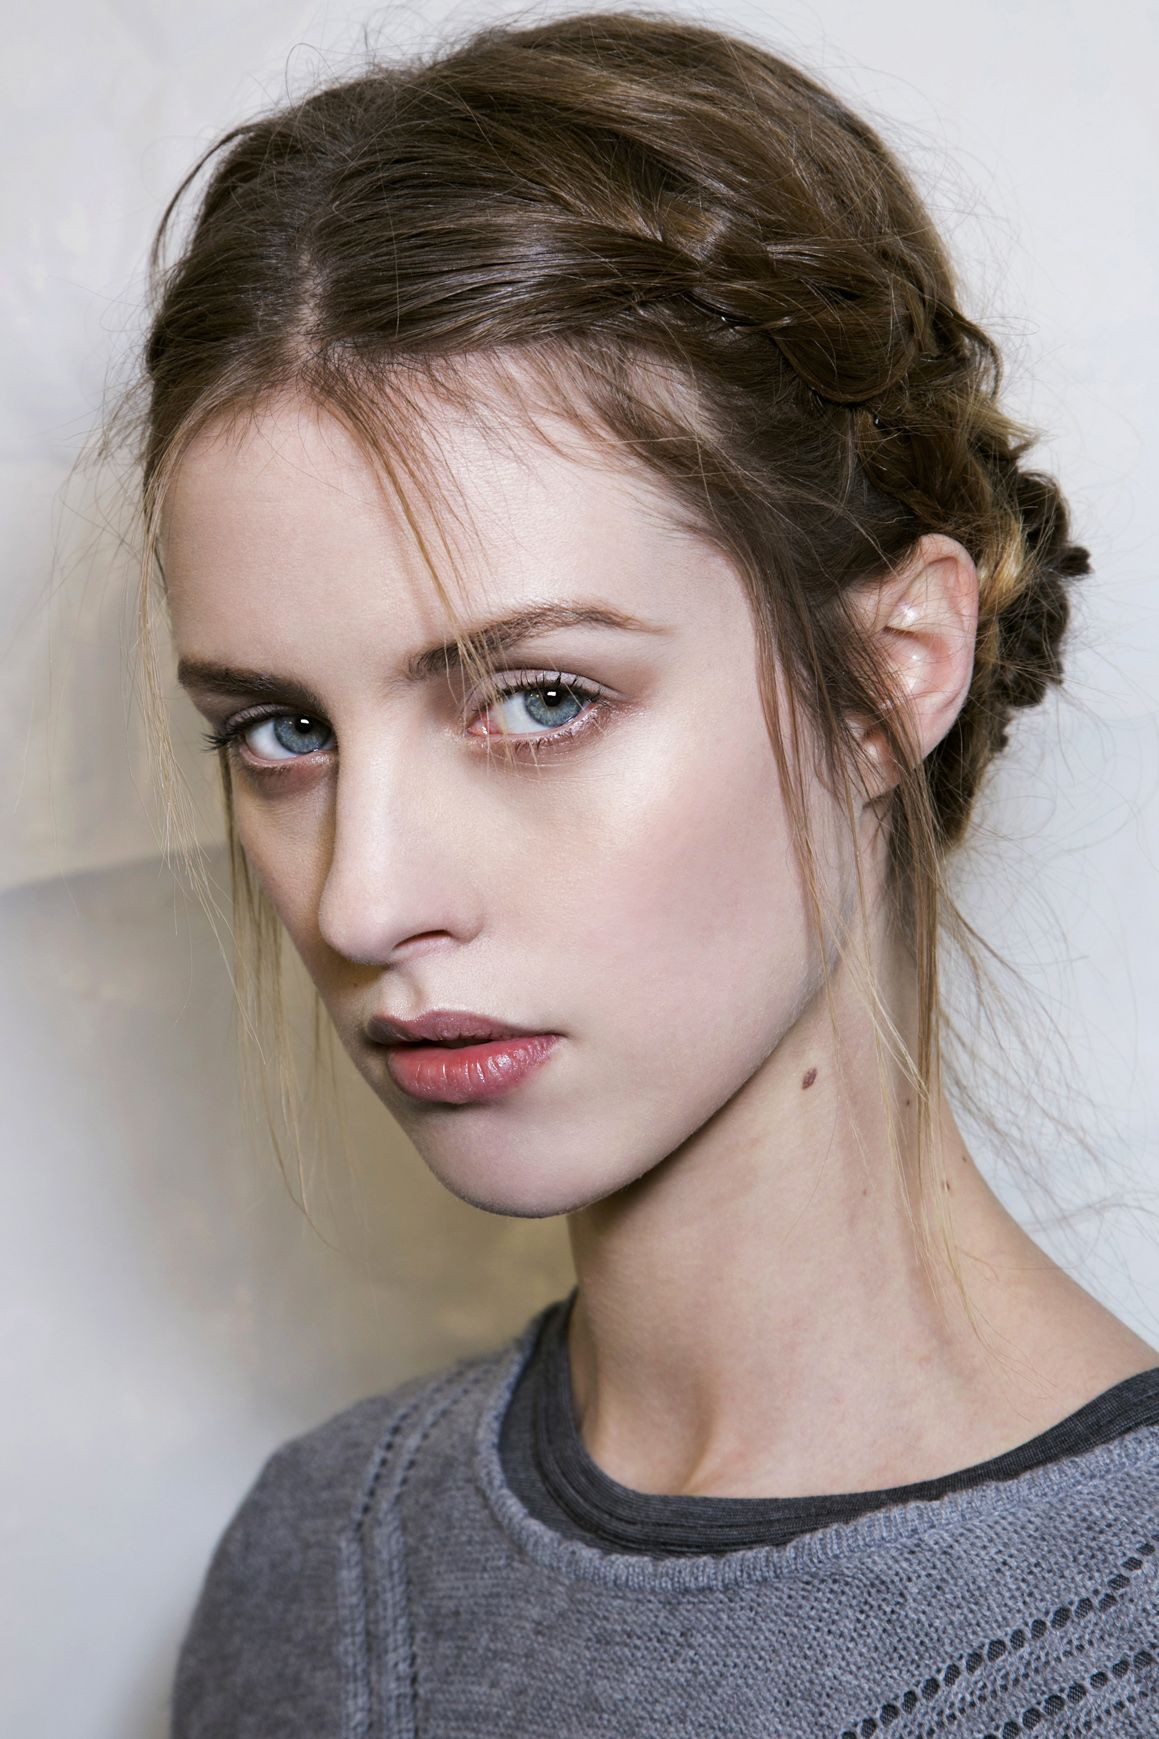 50 Of The Hottest Summer Hairstyles For Short Hair French Braid